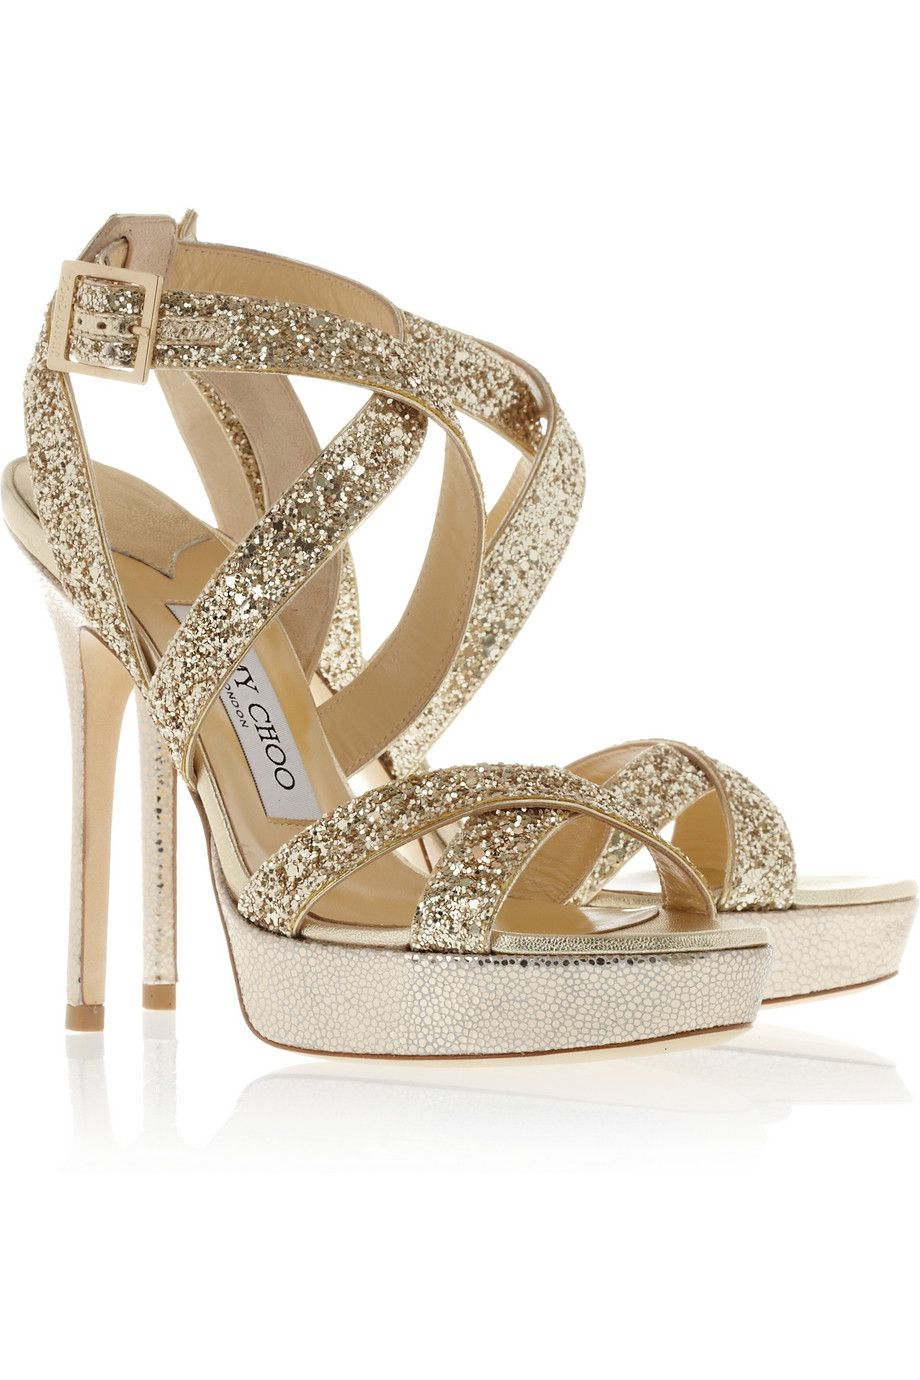 Chaussures Or Jimmy Choo Pour Femmes wCAbe15n4